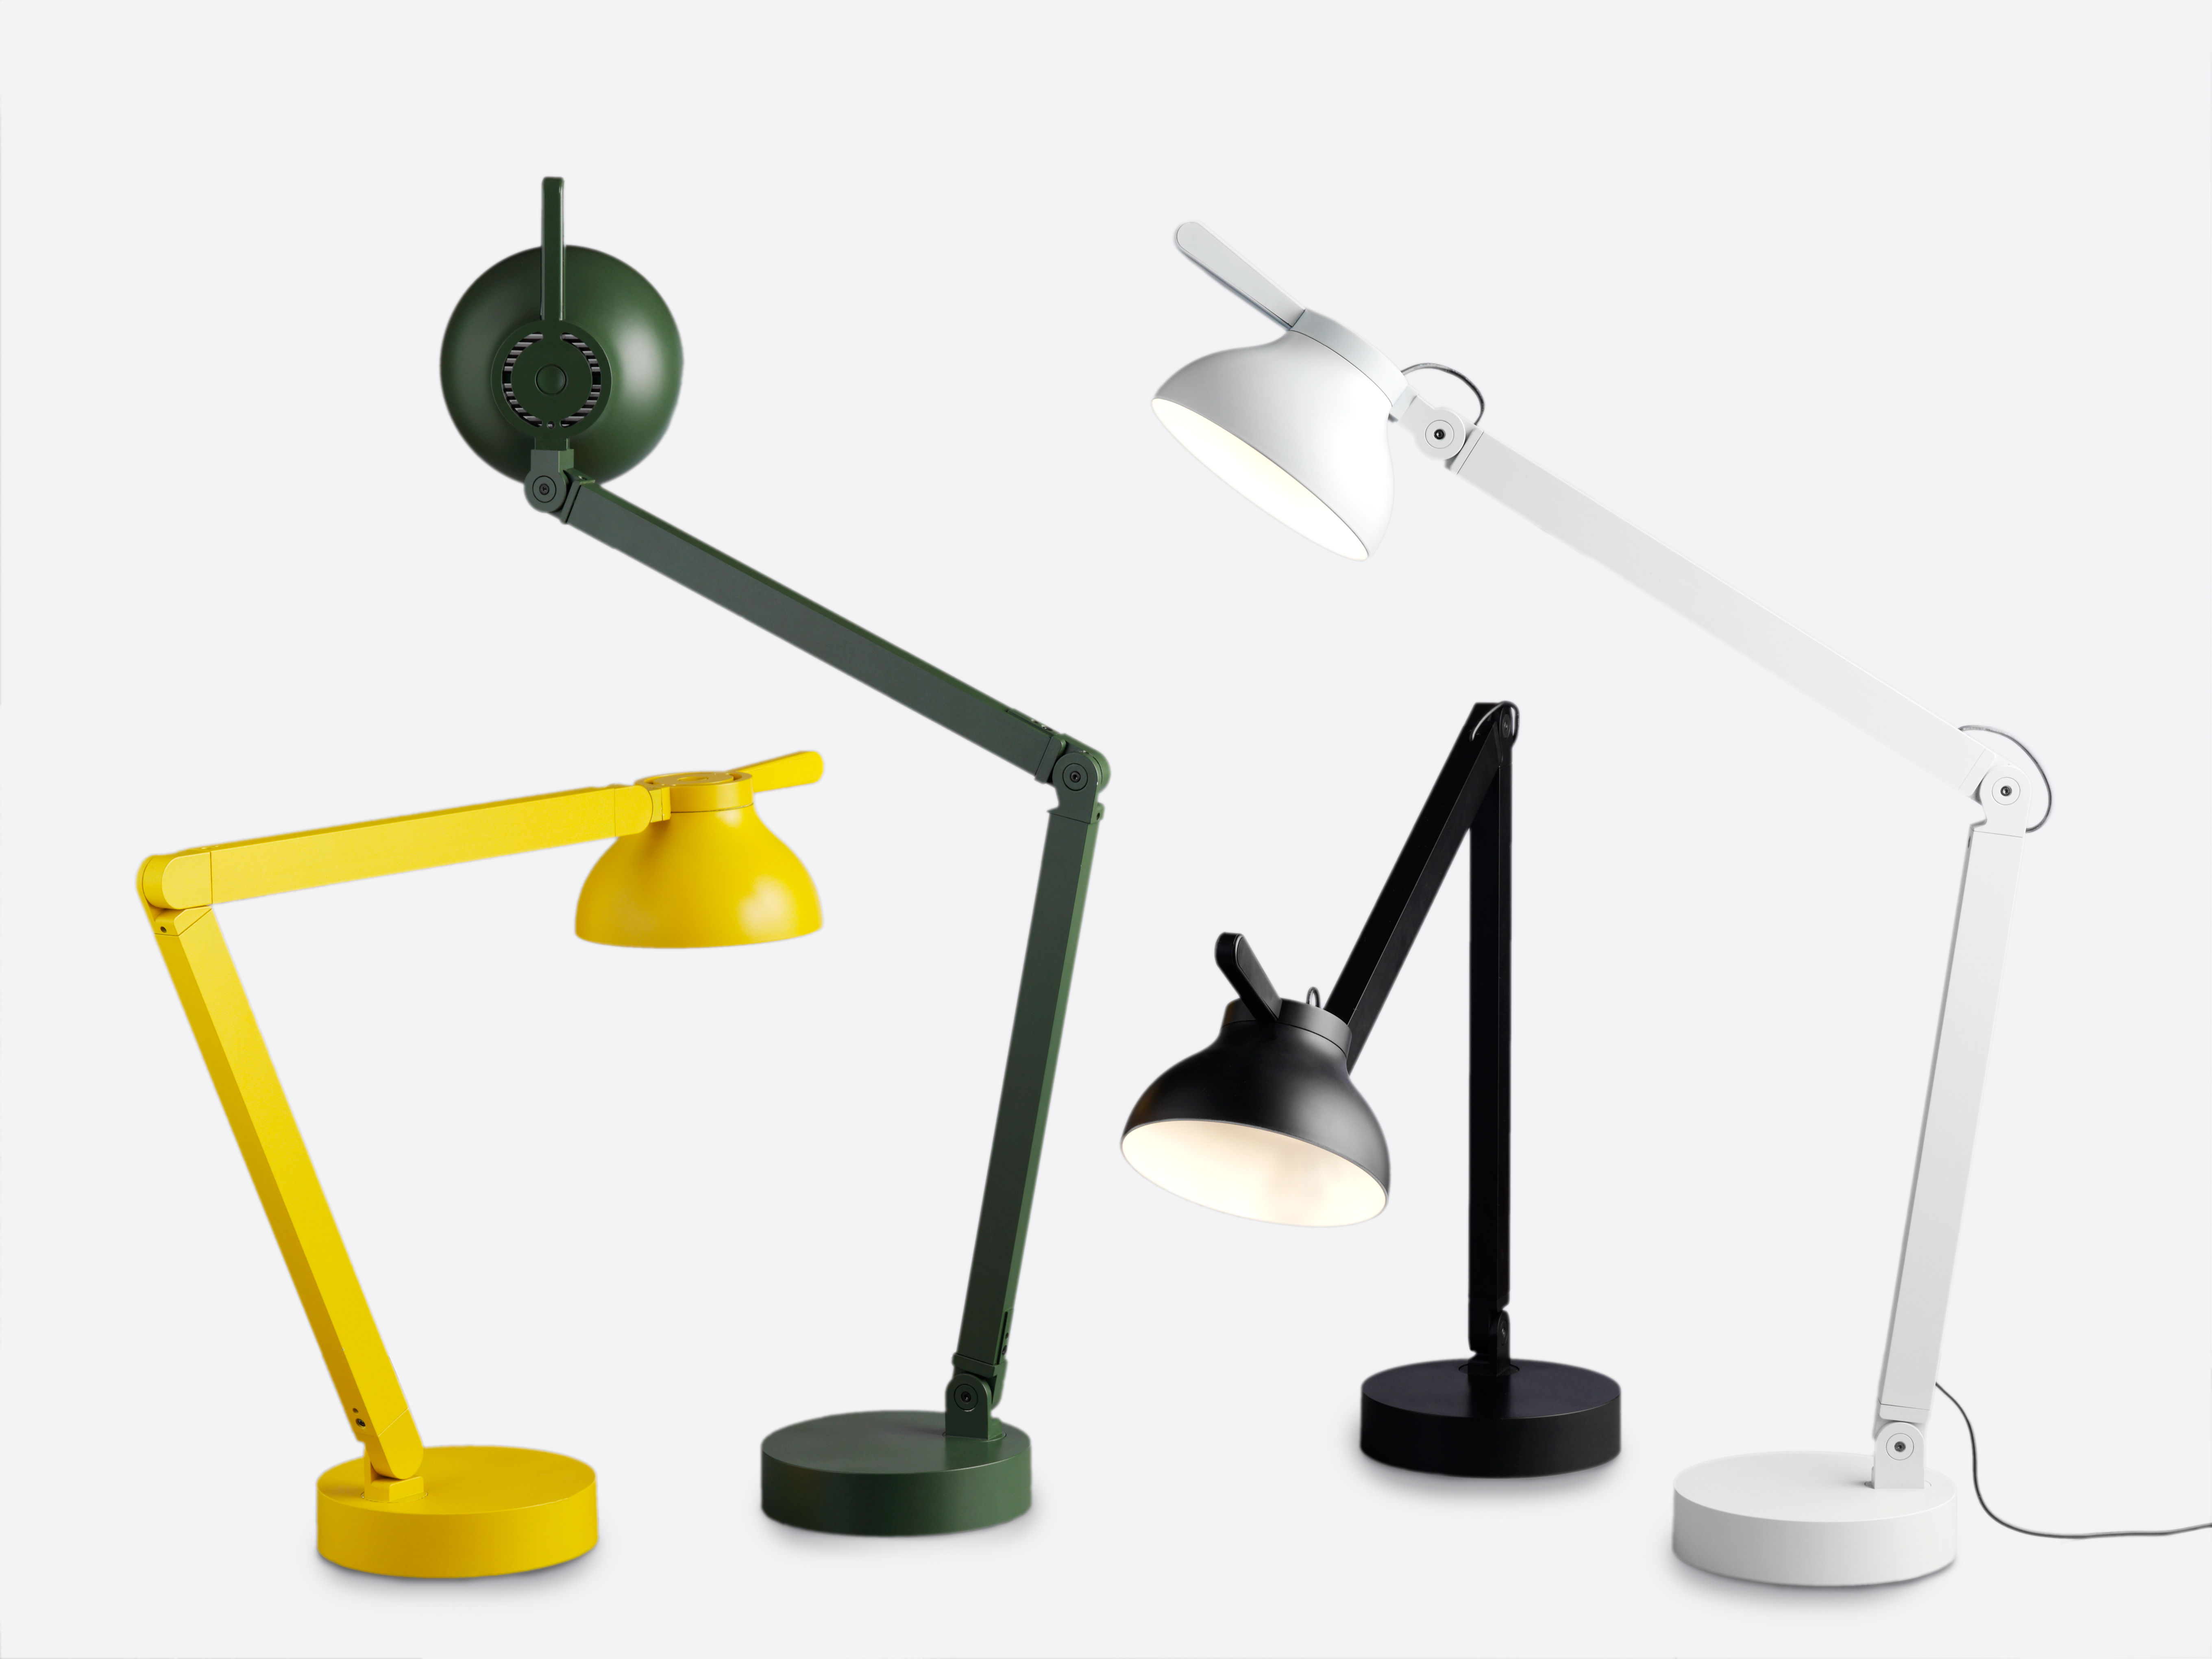 Lampe de table pc by pierre charpin led vert for Lampe de bureau london